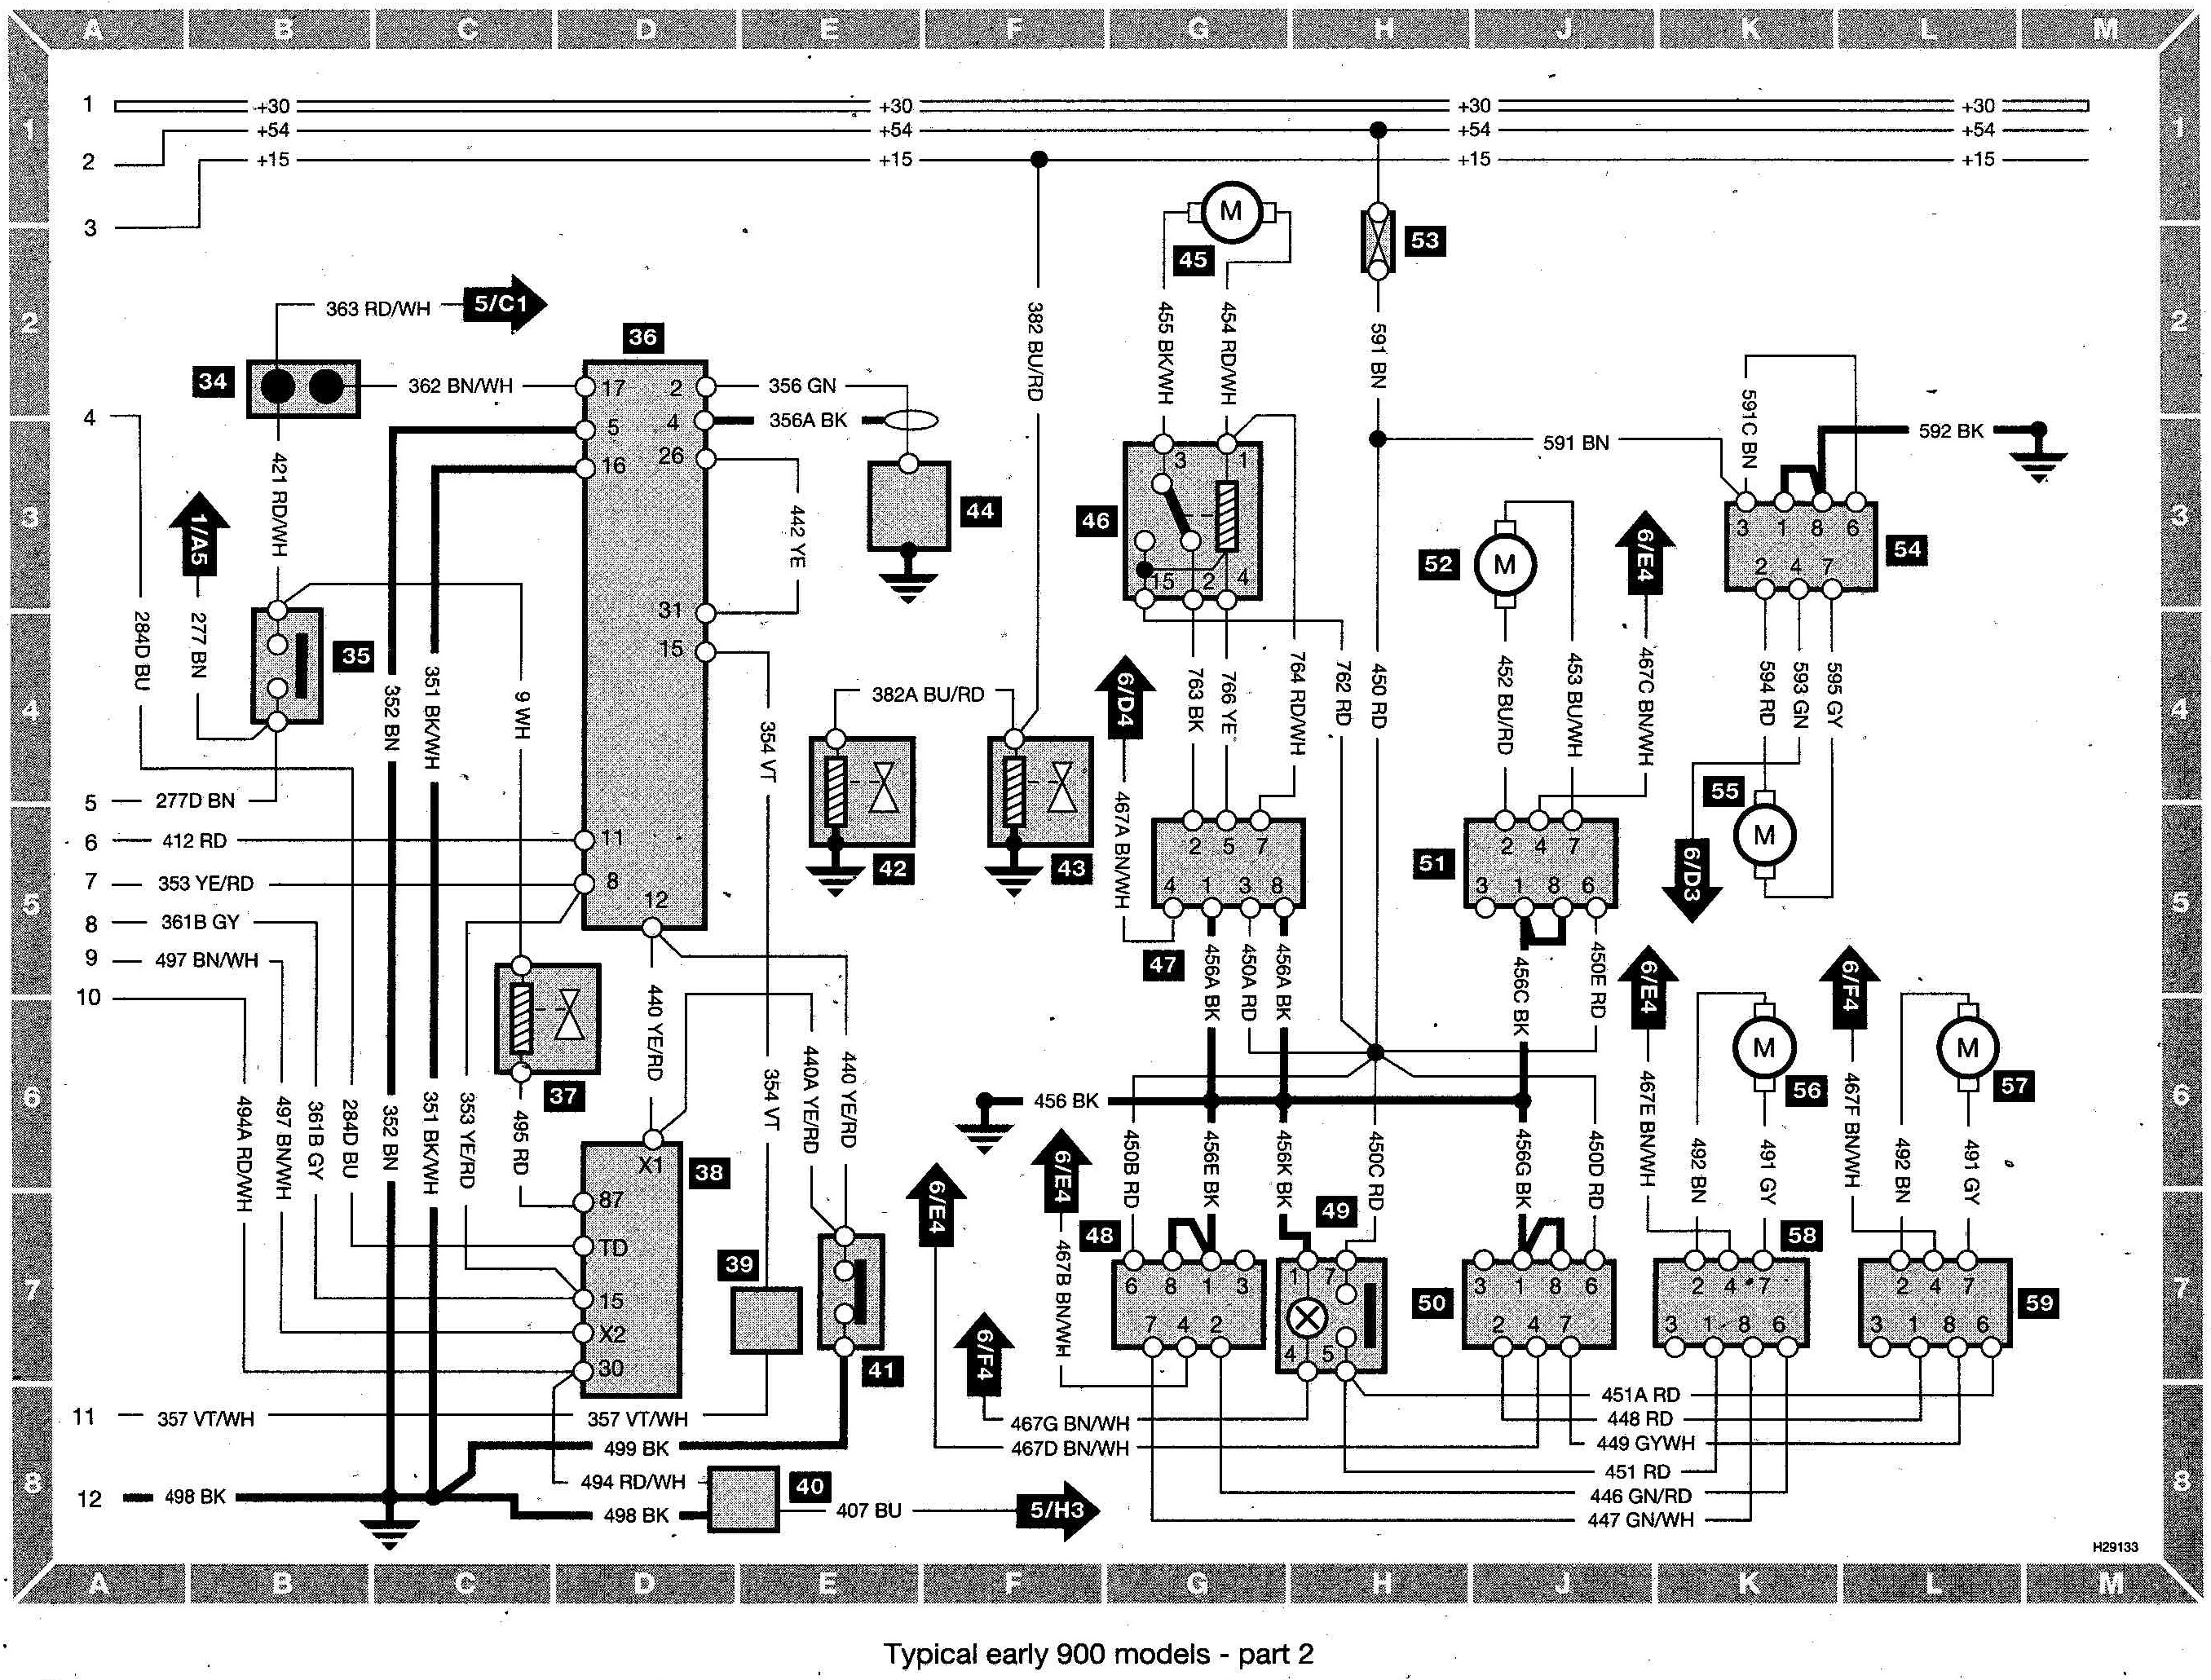 saab 9 5 wiring diagram get free image about wiring diagram Saab 9-3 Engine